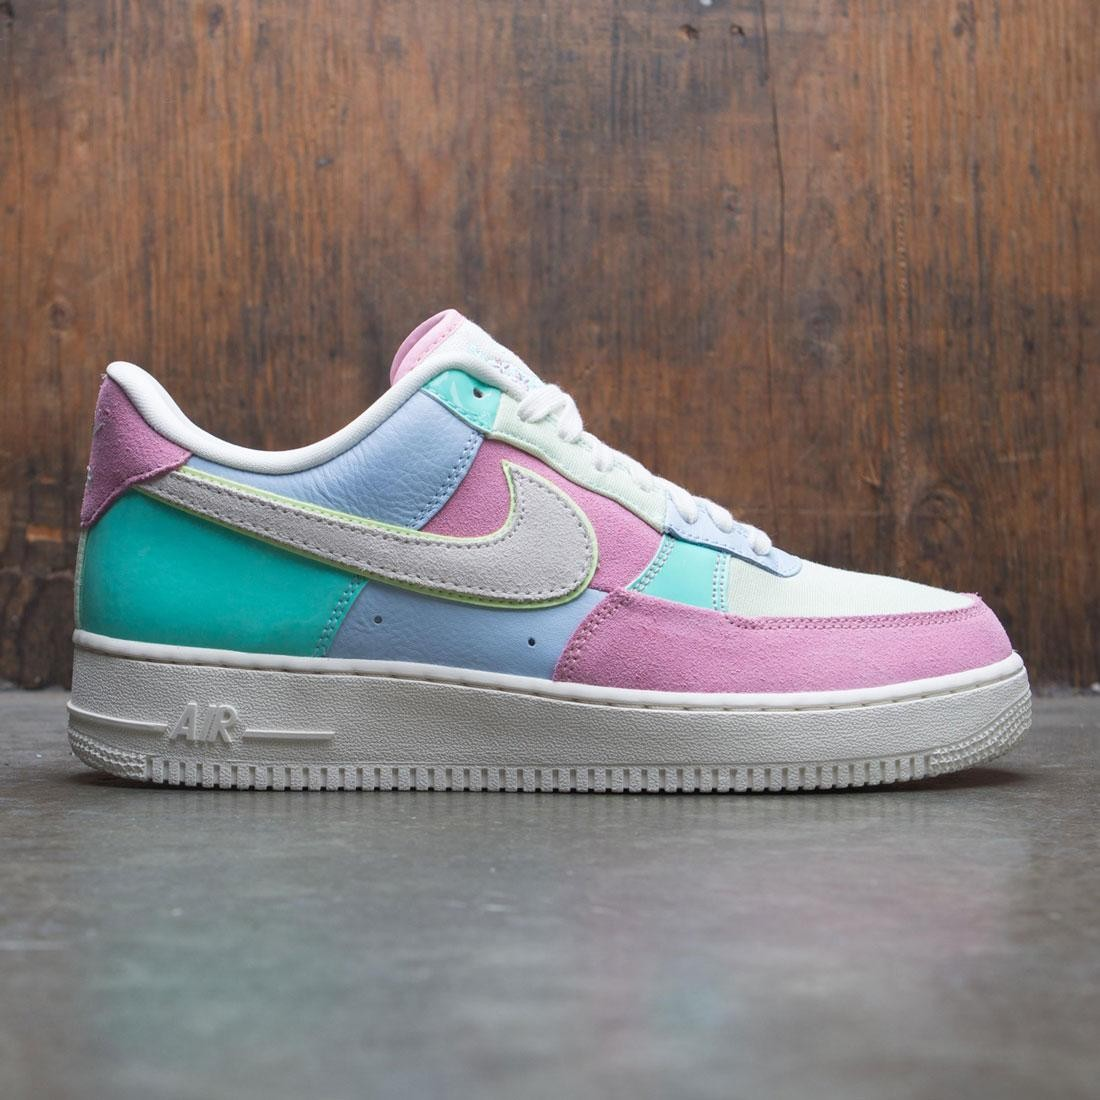 Nike Men Air Force 1 '07 Qs - Spring Patchwork (ice blue / sail-hyper turq-barely volt)